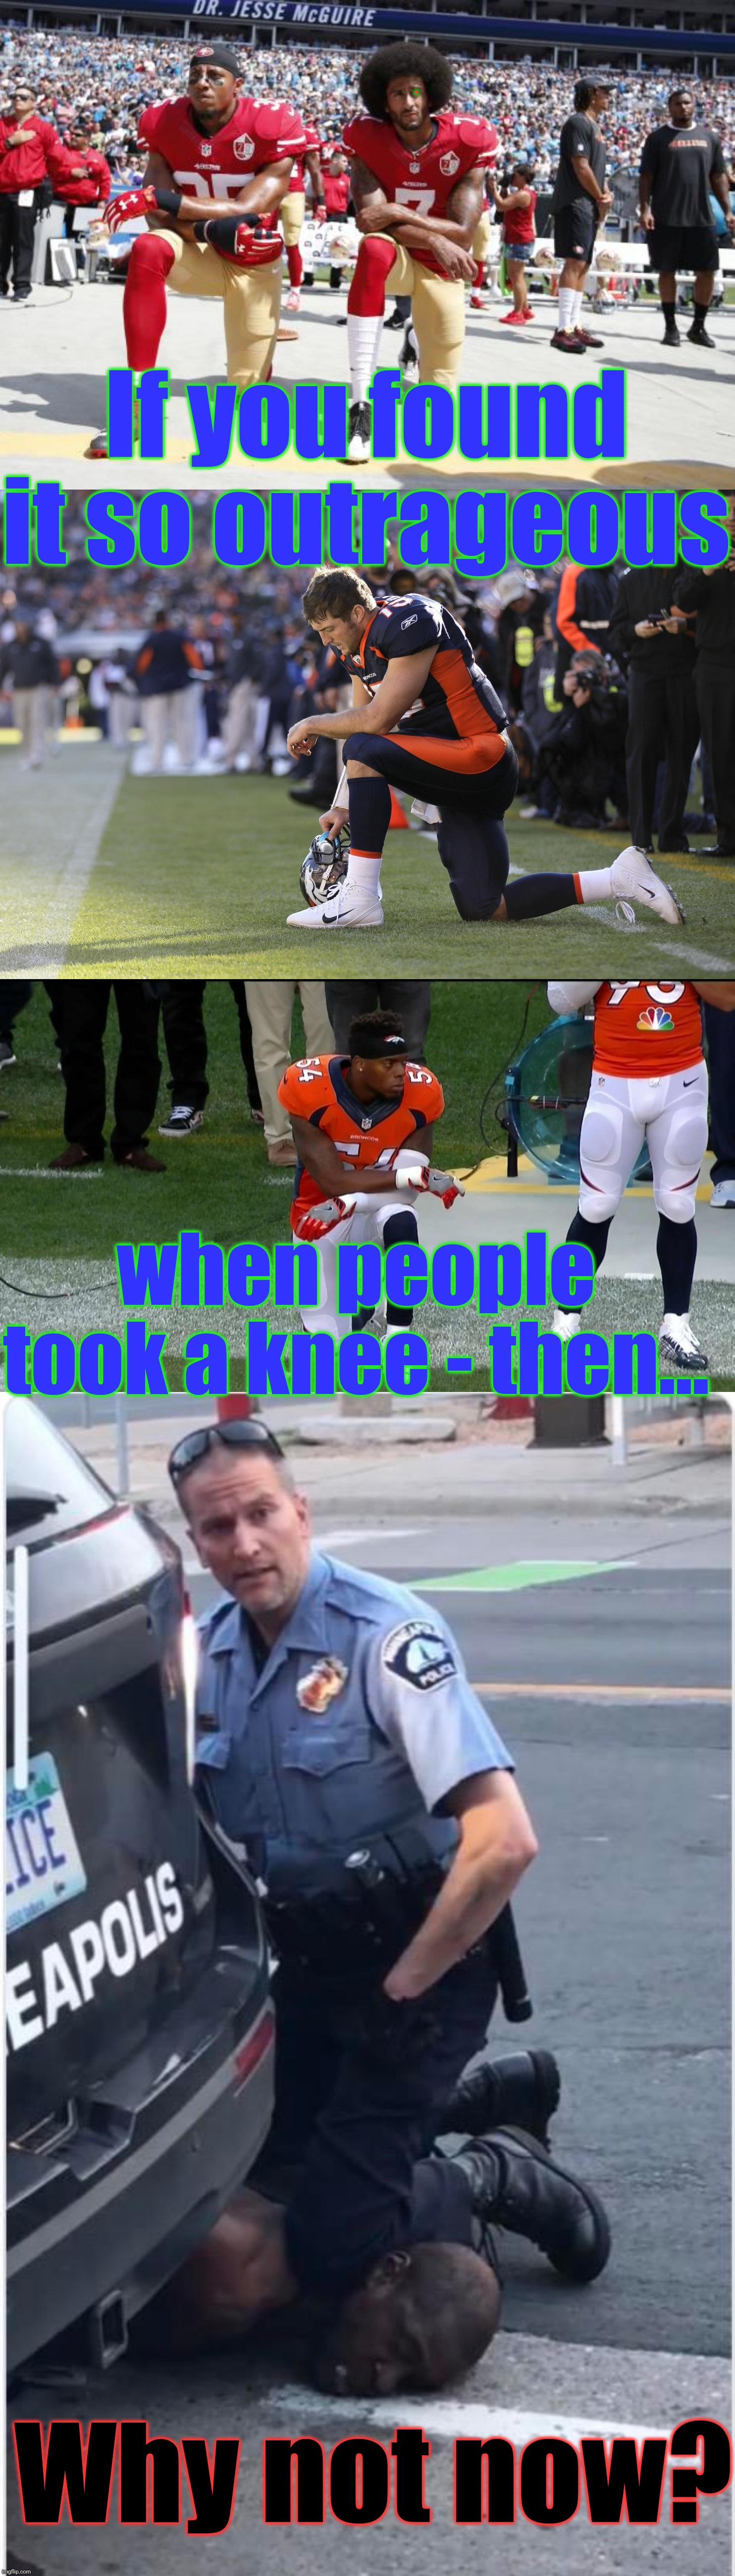 Which one of these guys - hasn't Donald Trump condemned? |  . If you found it so outrageous; when people took a knee - then... Why not now? | image tagged in colin kaepernick,taking a knee,not taking that,george floyd taking a knee,donald trump is proud,memes | made w/ Imgflip meme maker